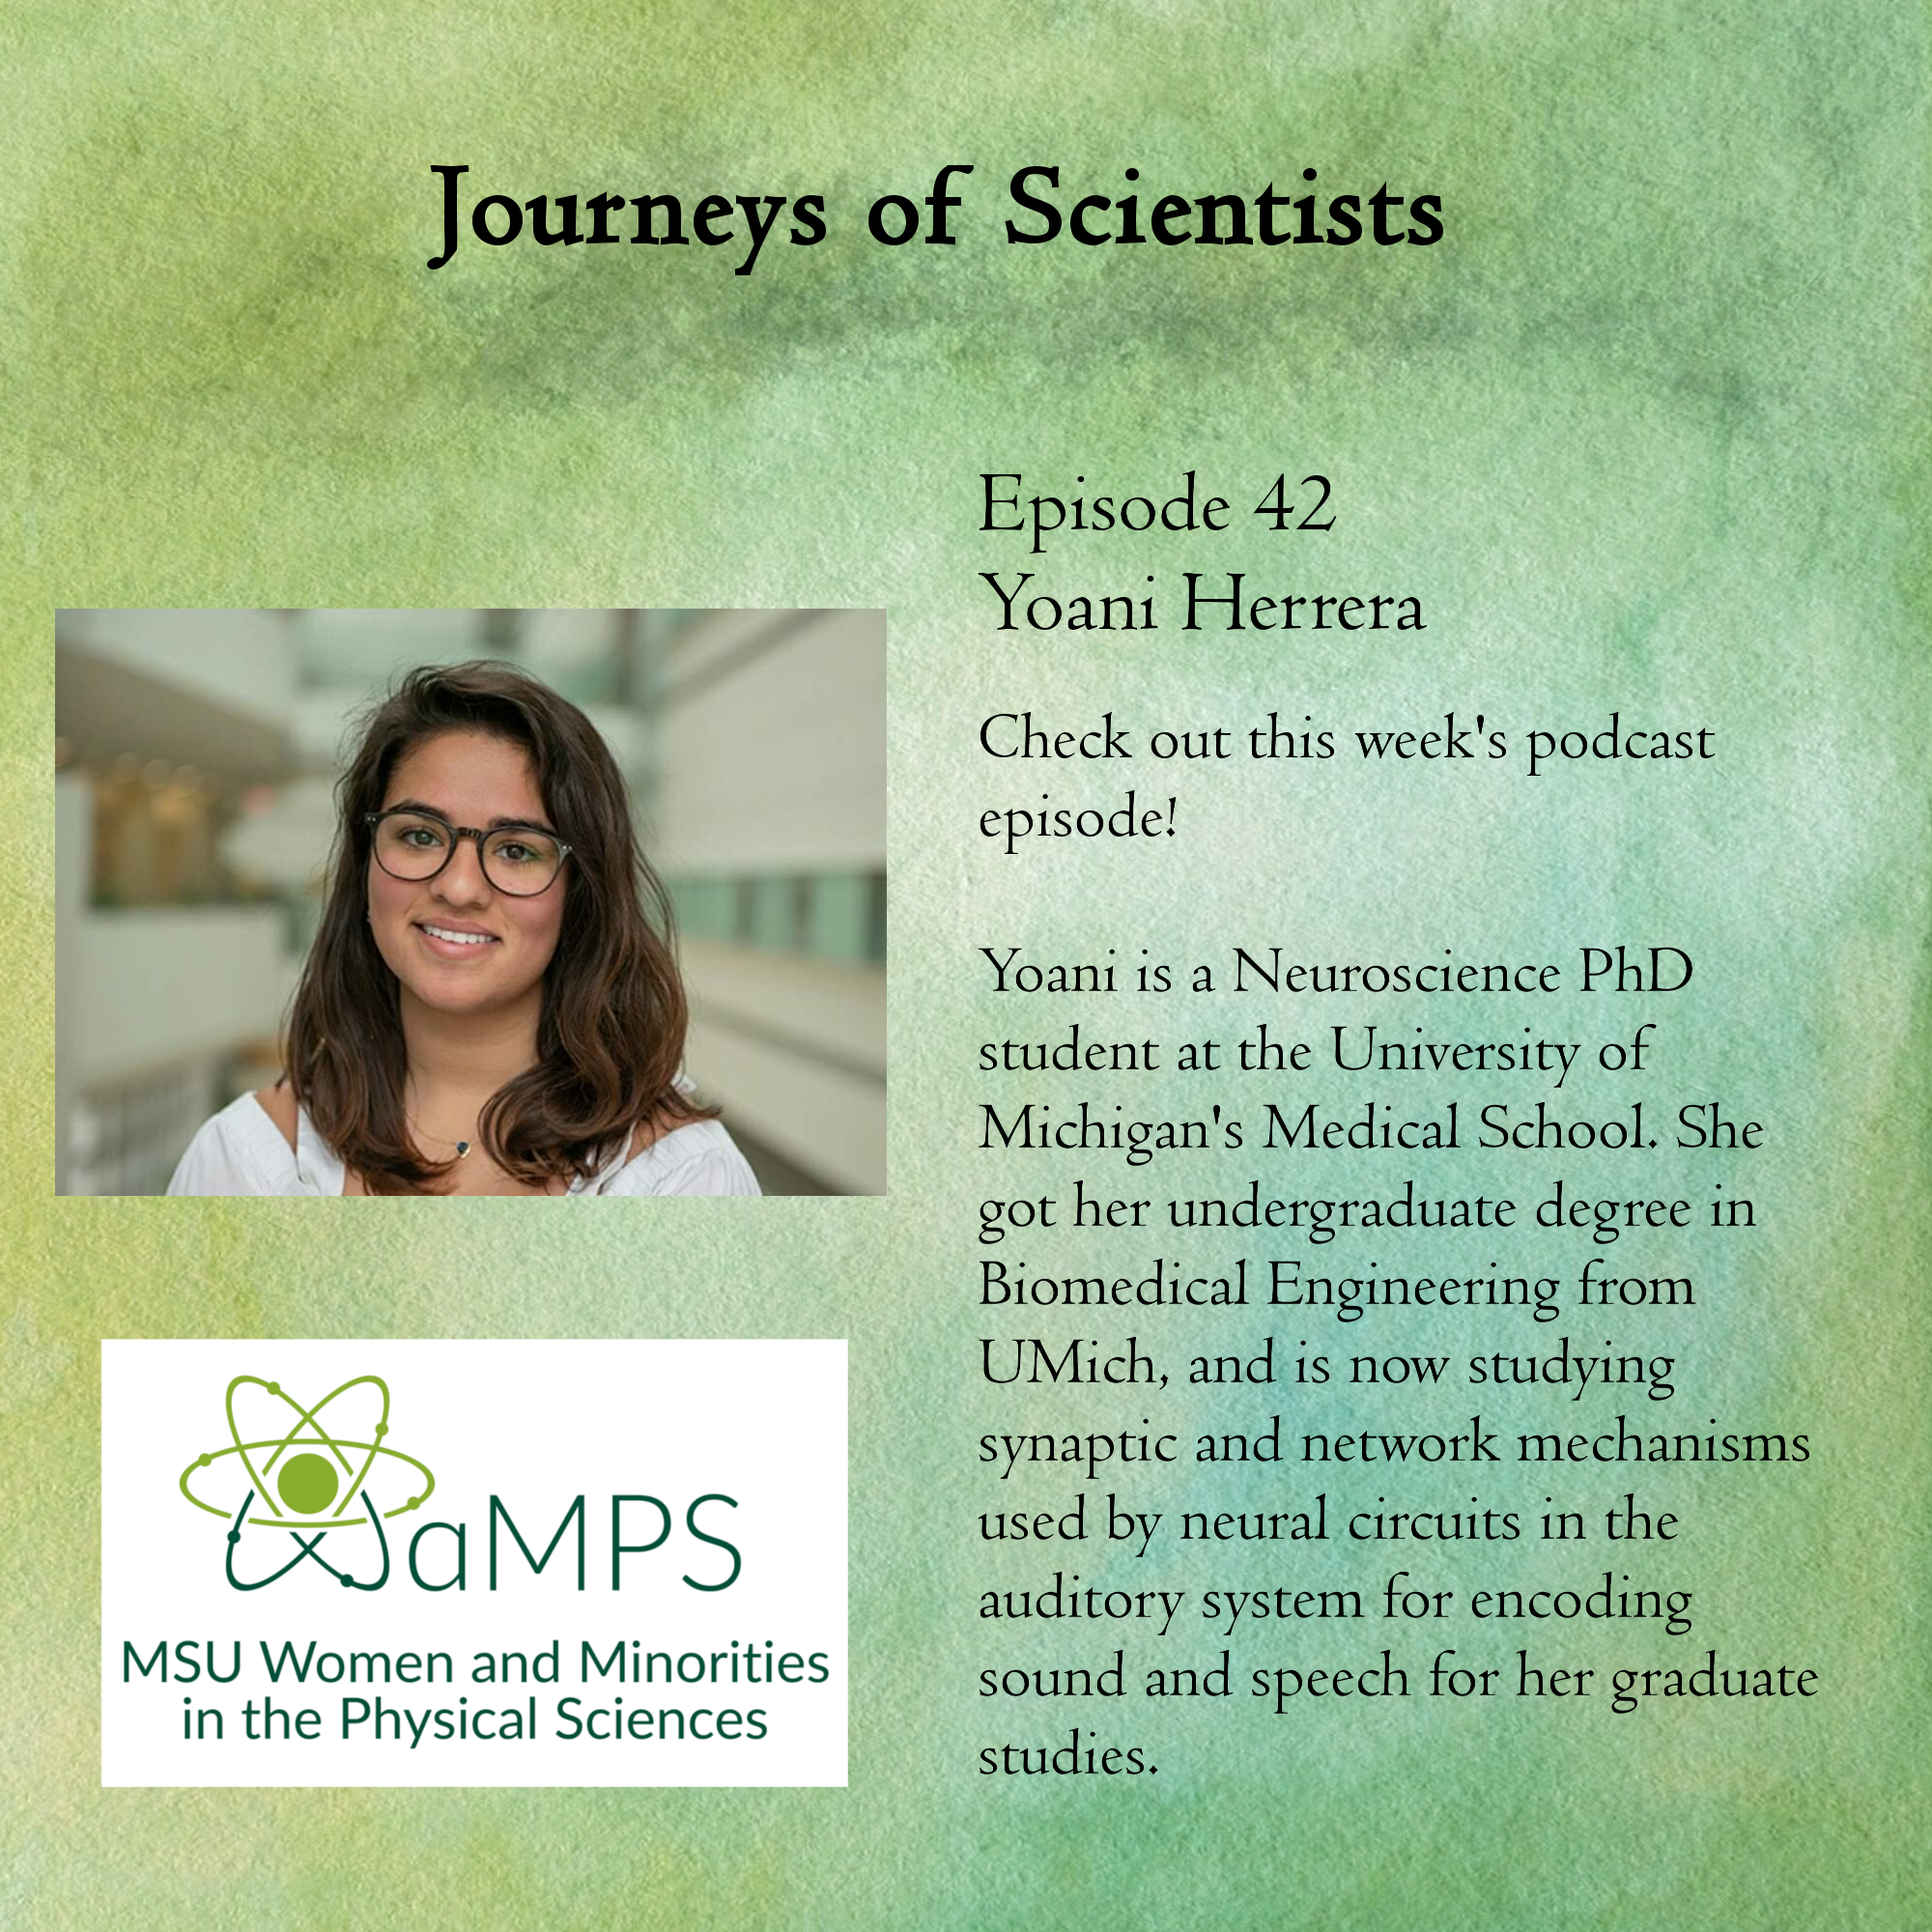 Yoani is a Neuroscience PhD student at the University of Michigan's Medical School. She got her undergraduate degree in Biomedical Engineering from UMich, and is now studying synaptic and network mechanisms used by neural circuits in the auditory system for encoding sound and speech for her graduate studies.